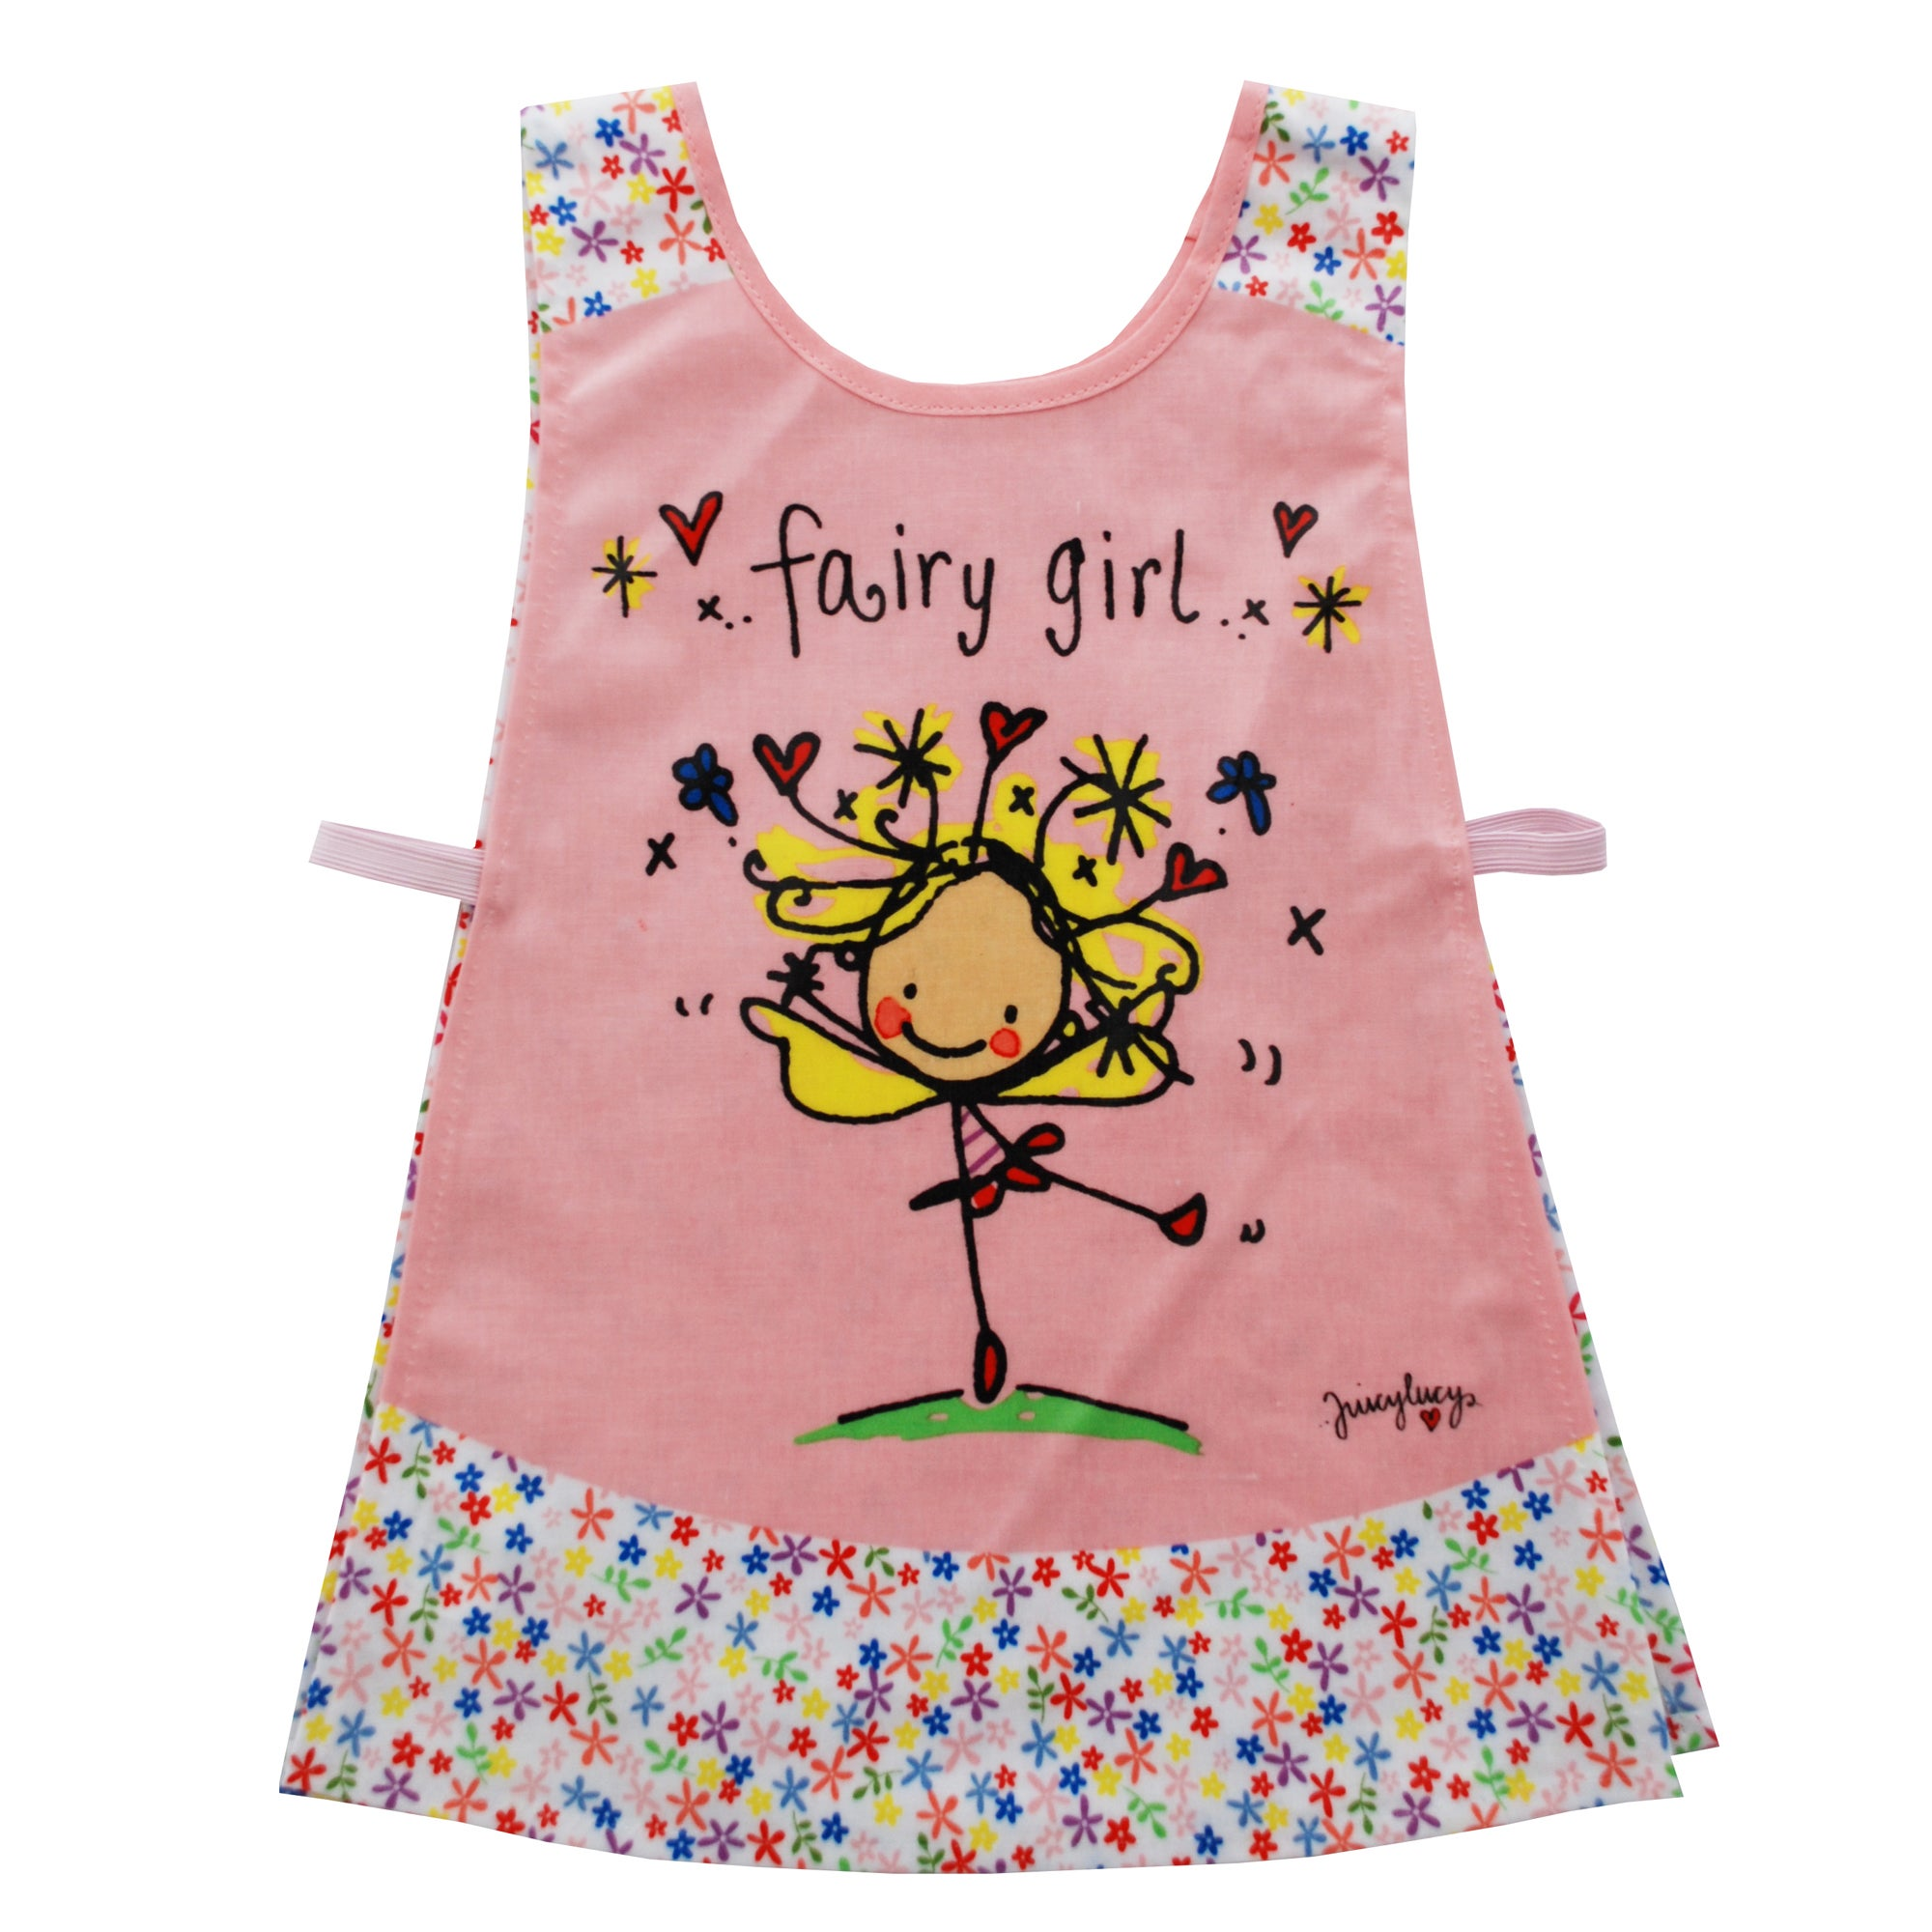 Kids Juicy Lucy Fairy Girl Pink Tabard